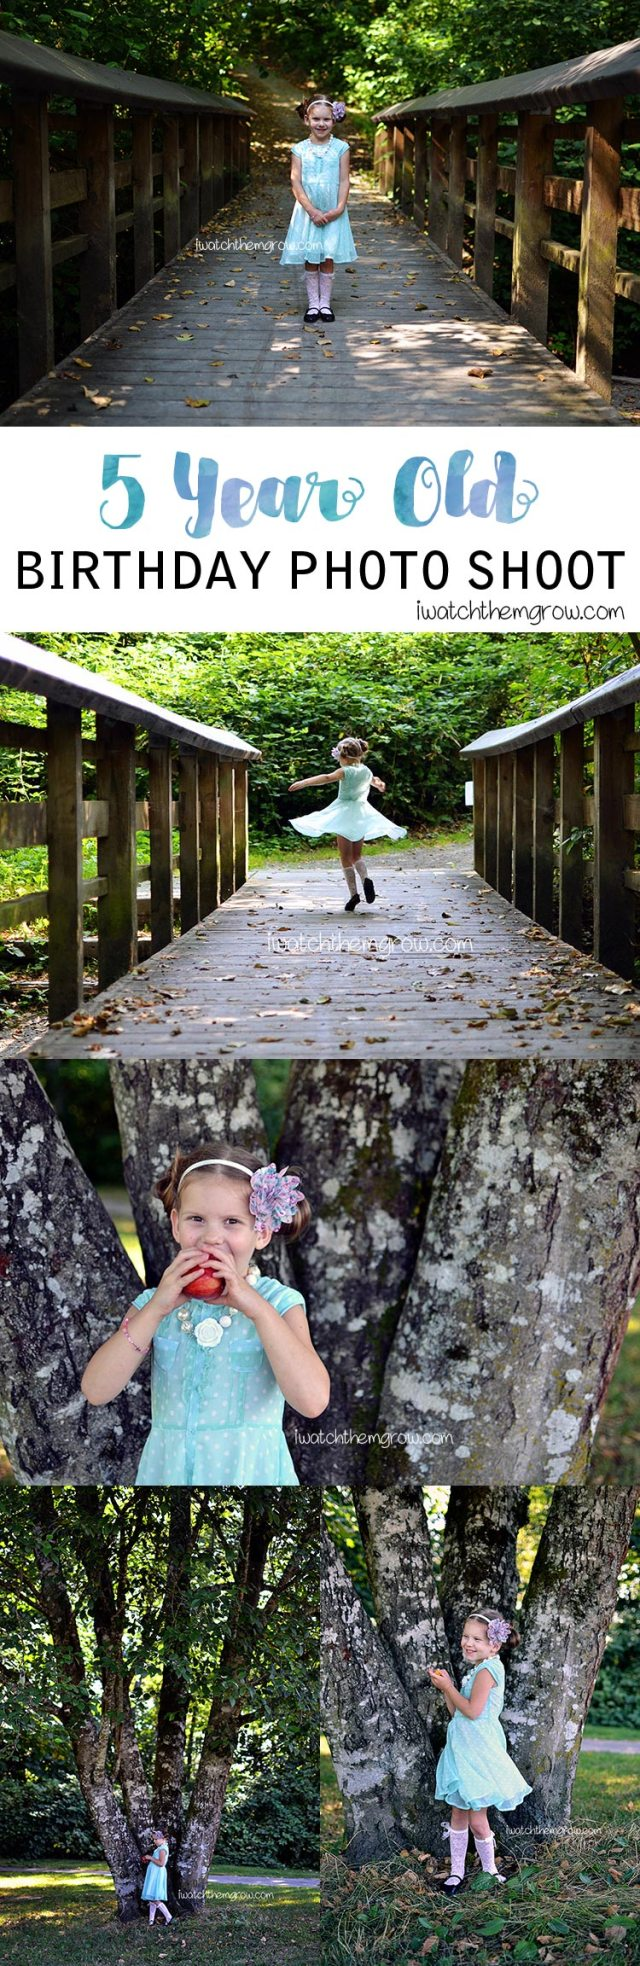 5 year old birthday photo shoot at the park in summer. Posing, clothing and accessory ideas for five year old girl photo shoot.